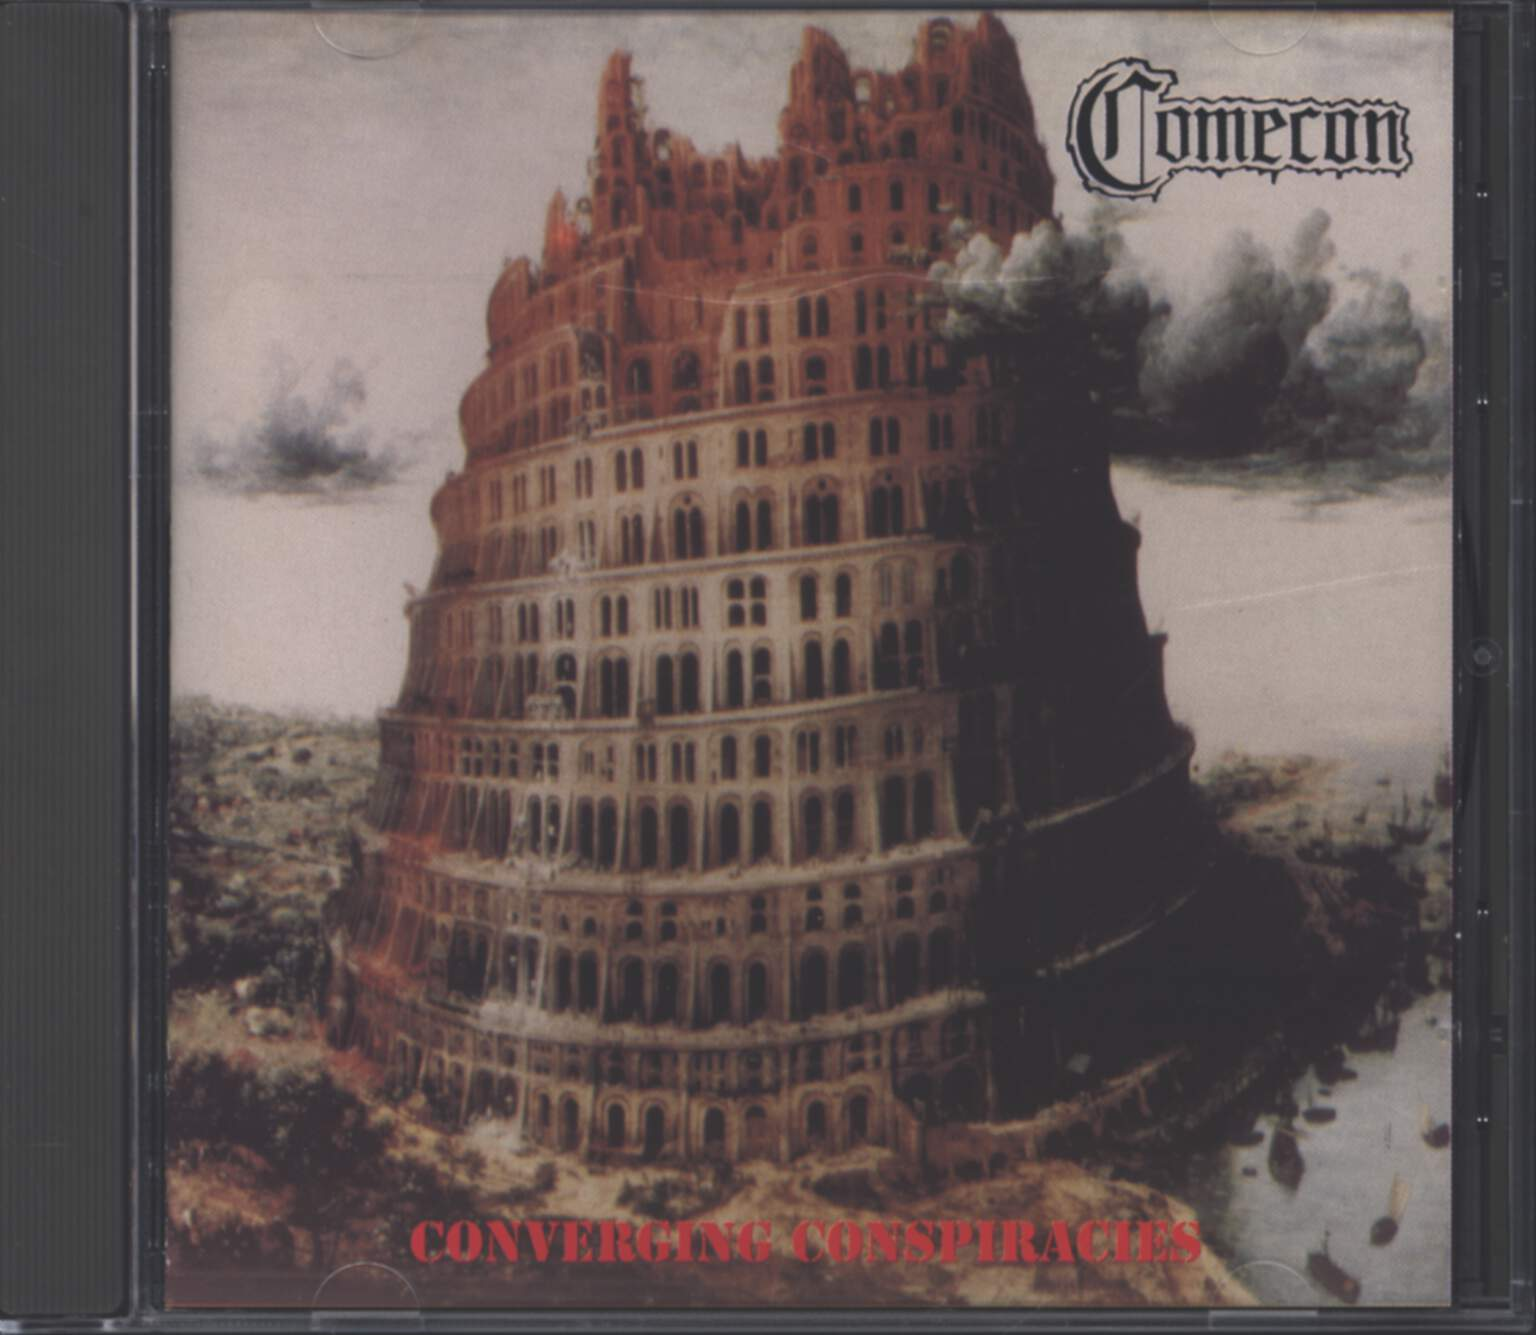 Comecon: Converging Conspiracies, CD